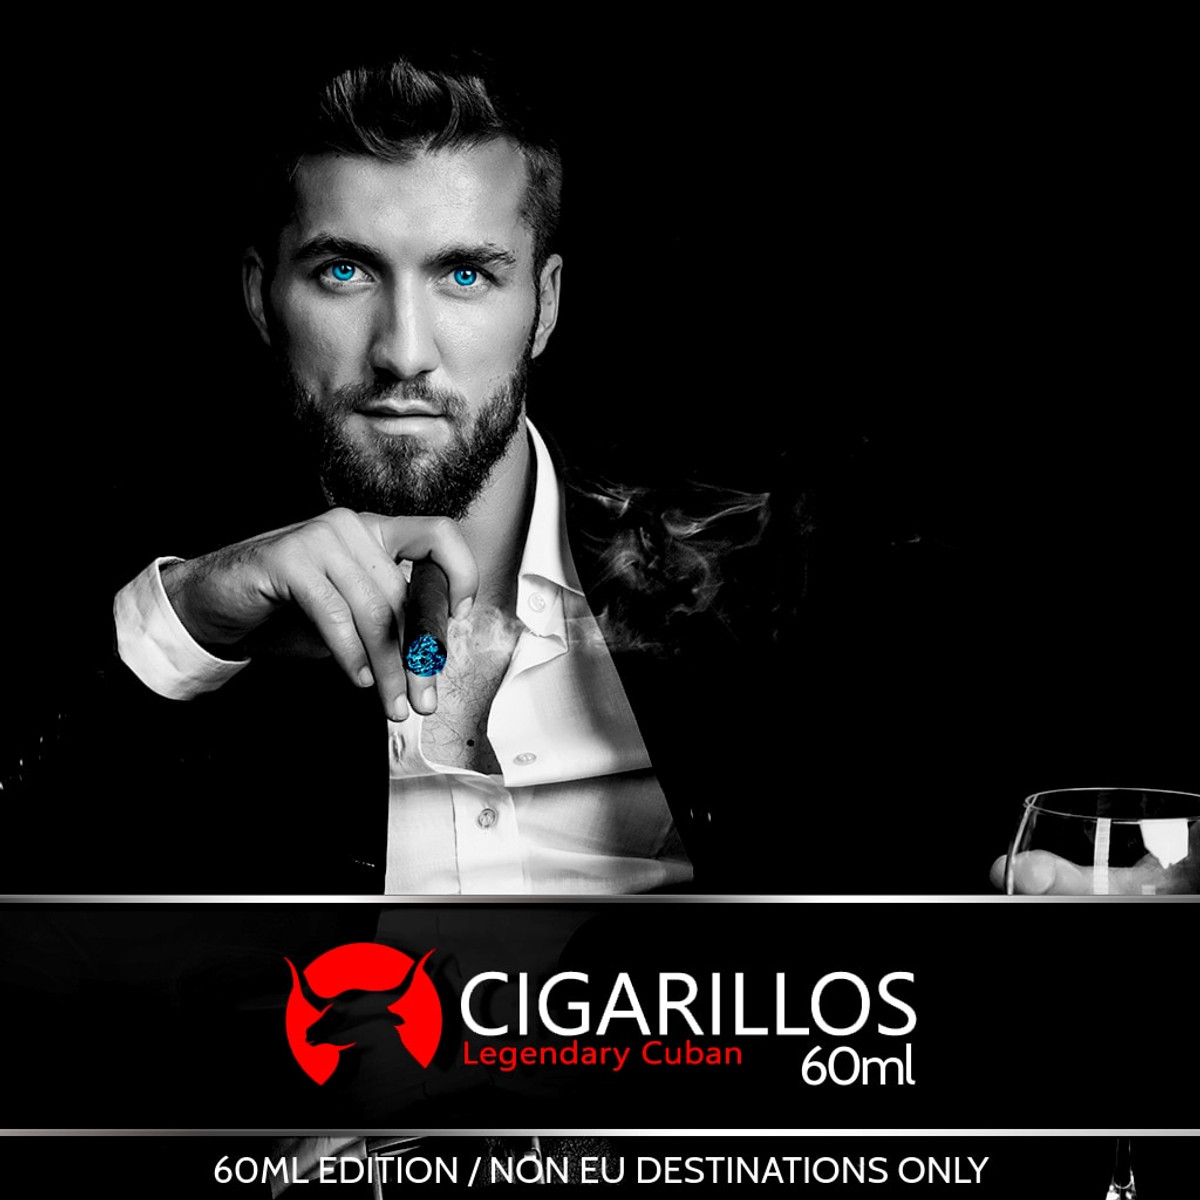 CIGARILLOS - 60ml